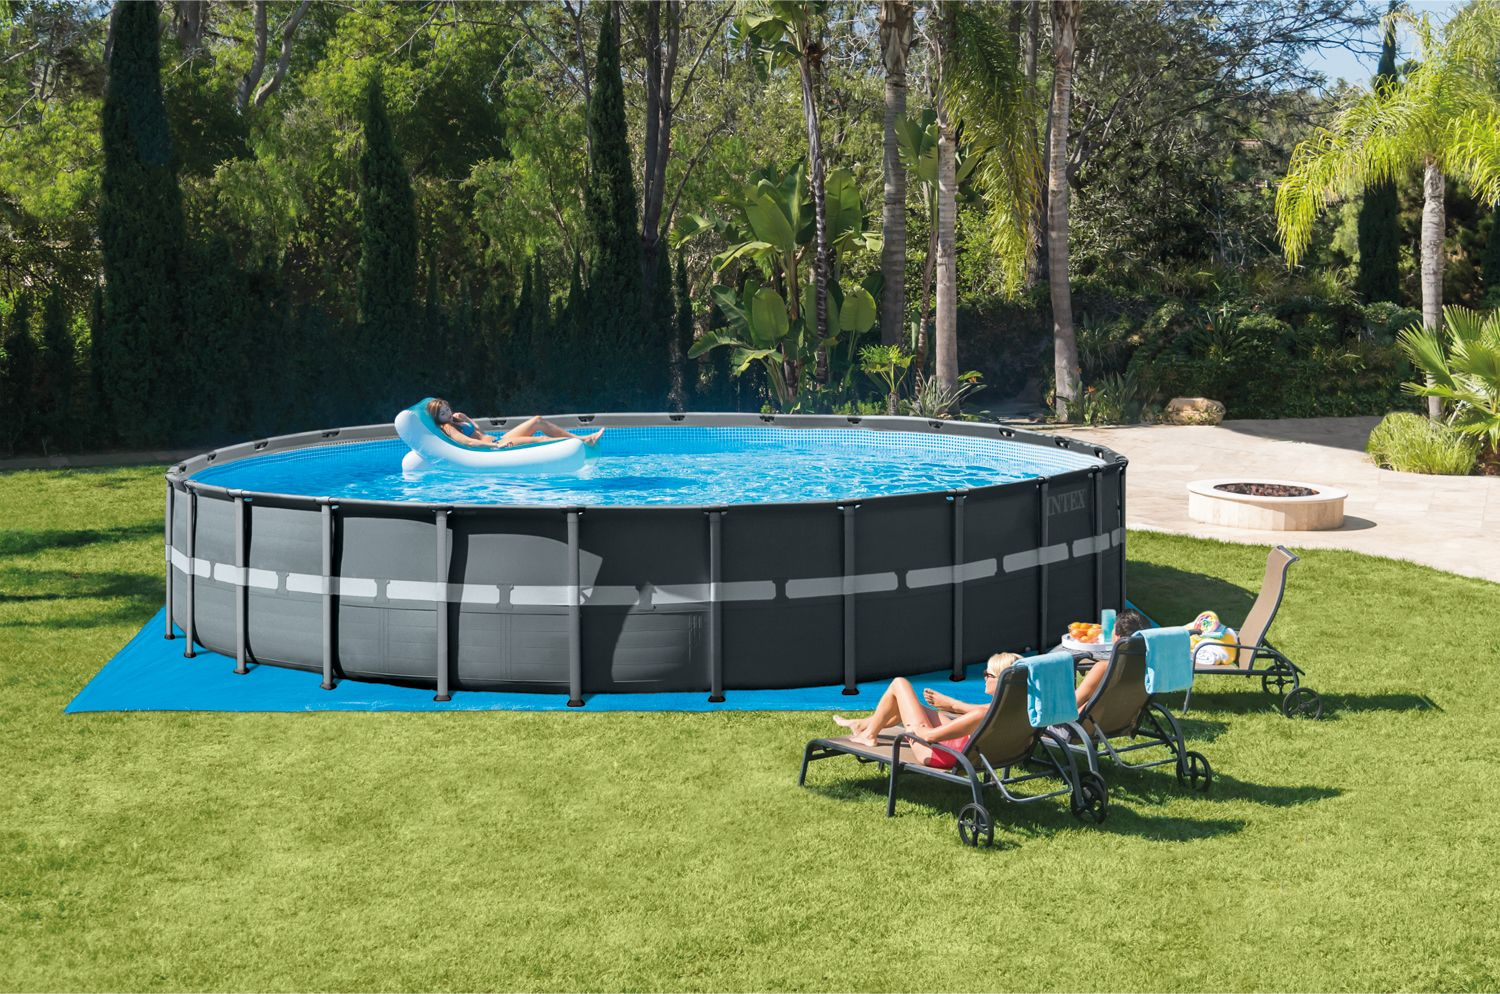 Intex 26ft X 52in Ultra Xtr Round Frame Pool Set With Sand Filter Pump Walmart Com Above Ground Pool Small Pool Design Best Above Ground Pool